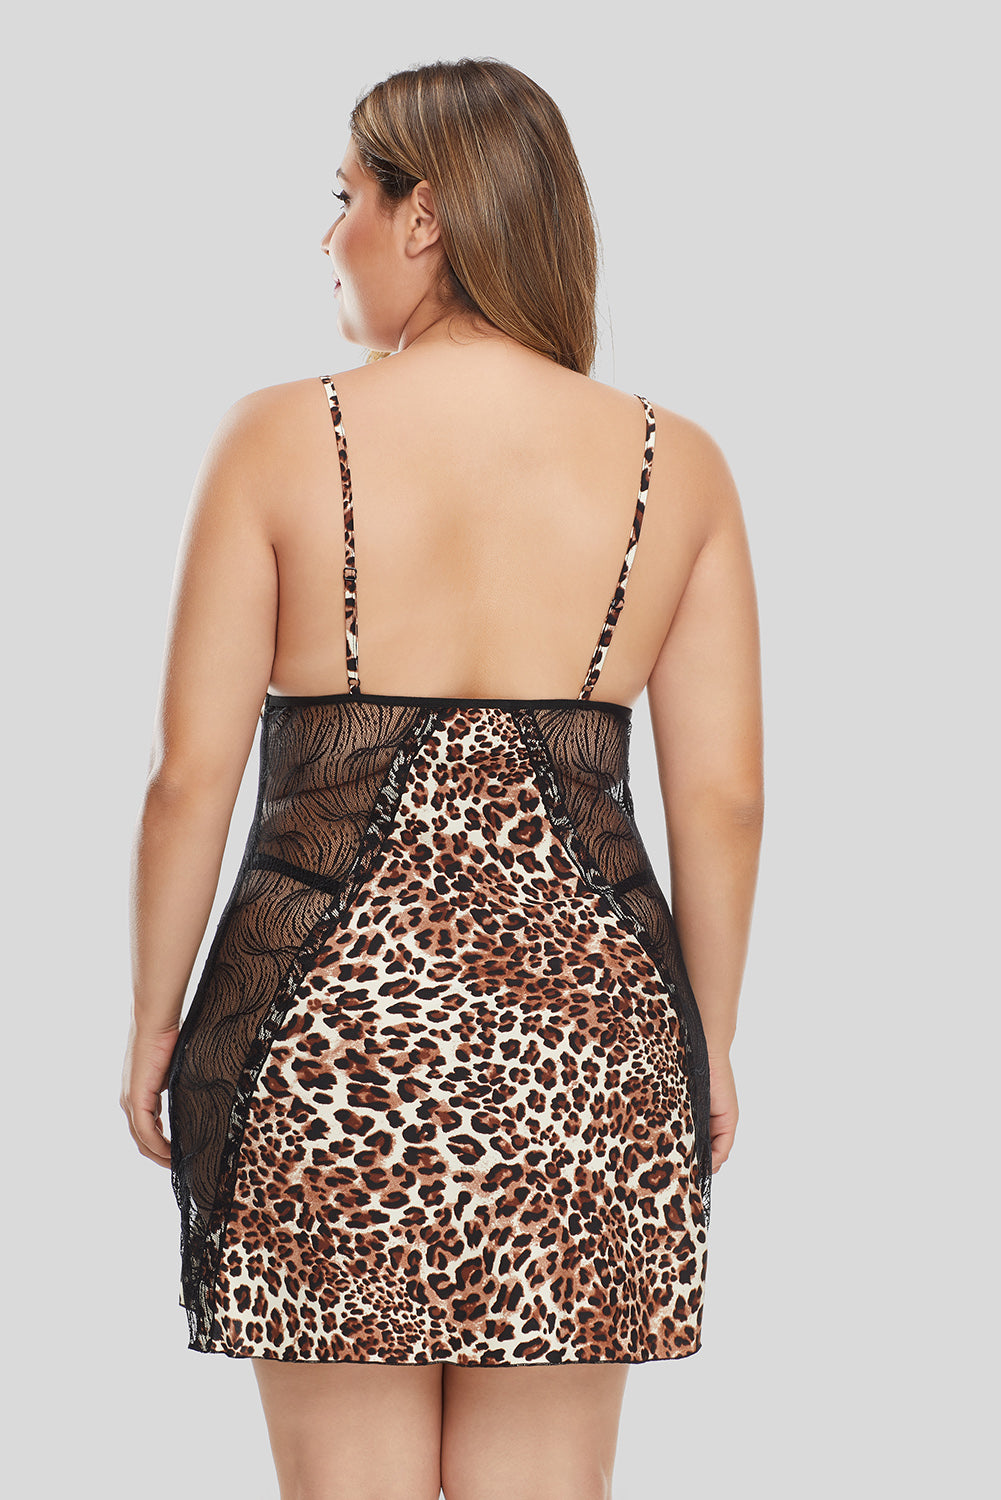 Cheetah Print Lace Hollow-out Plus Size Lingerie